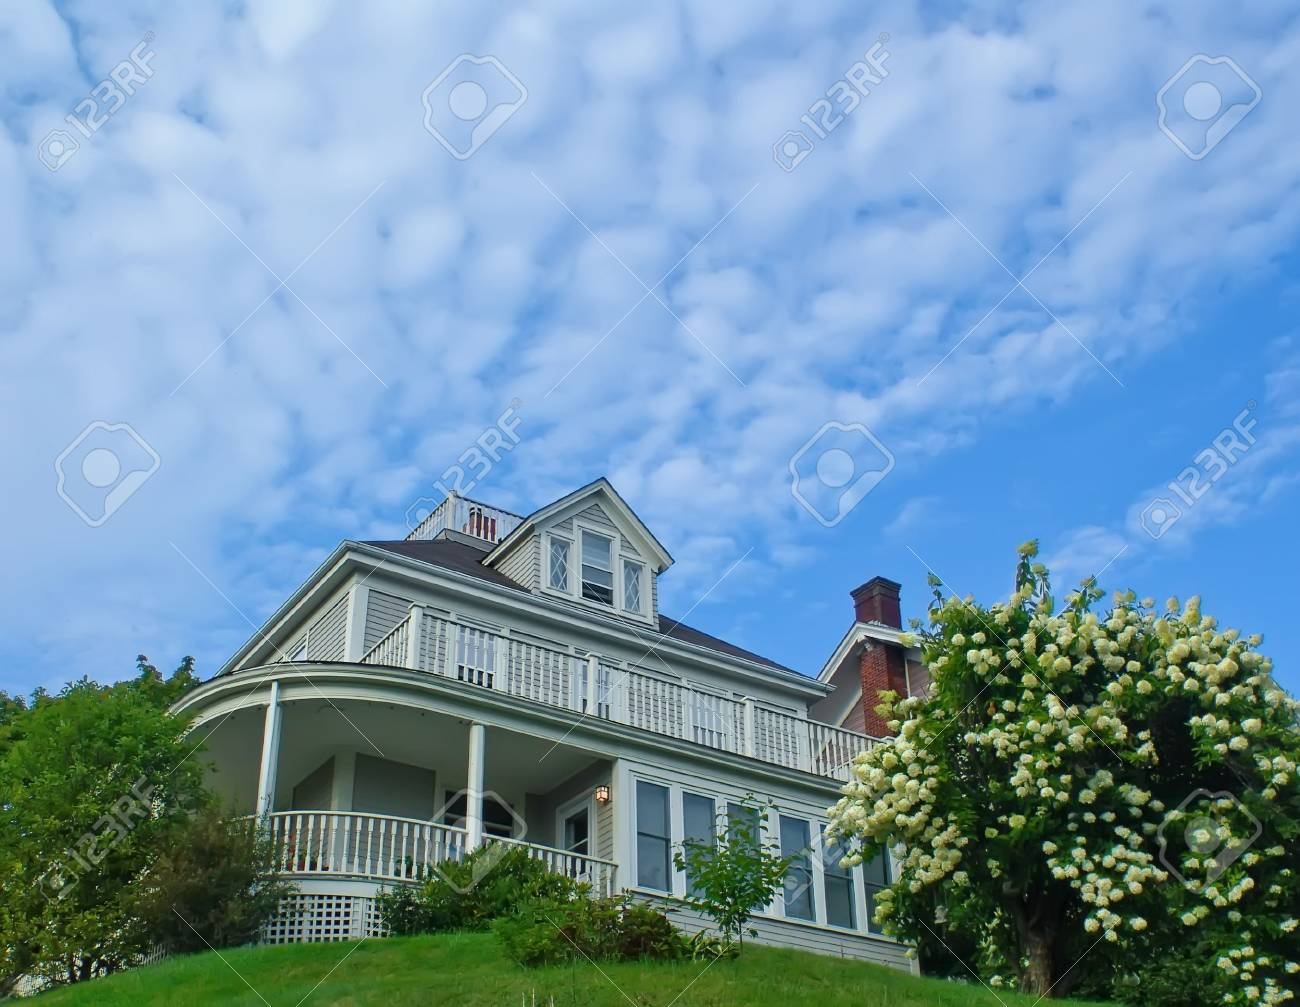 Real Estate: Detached House on the hill in blooming garden. - 5425760